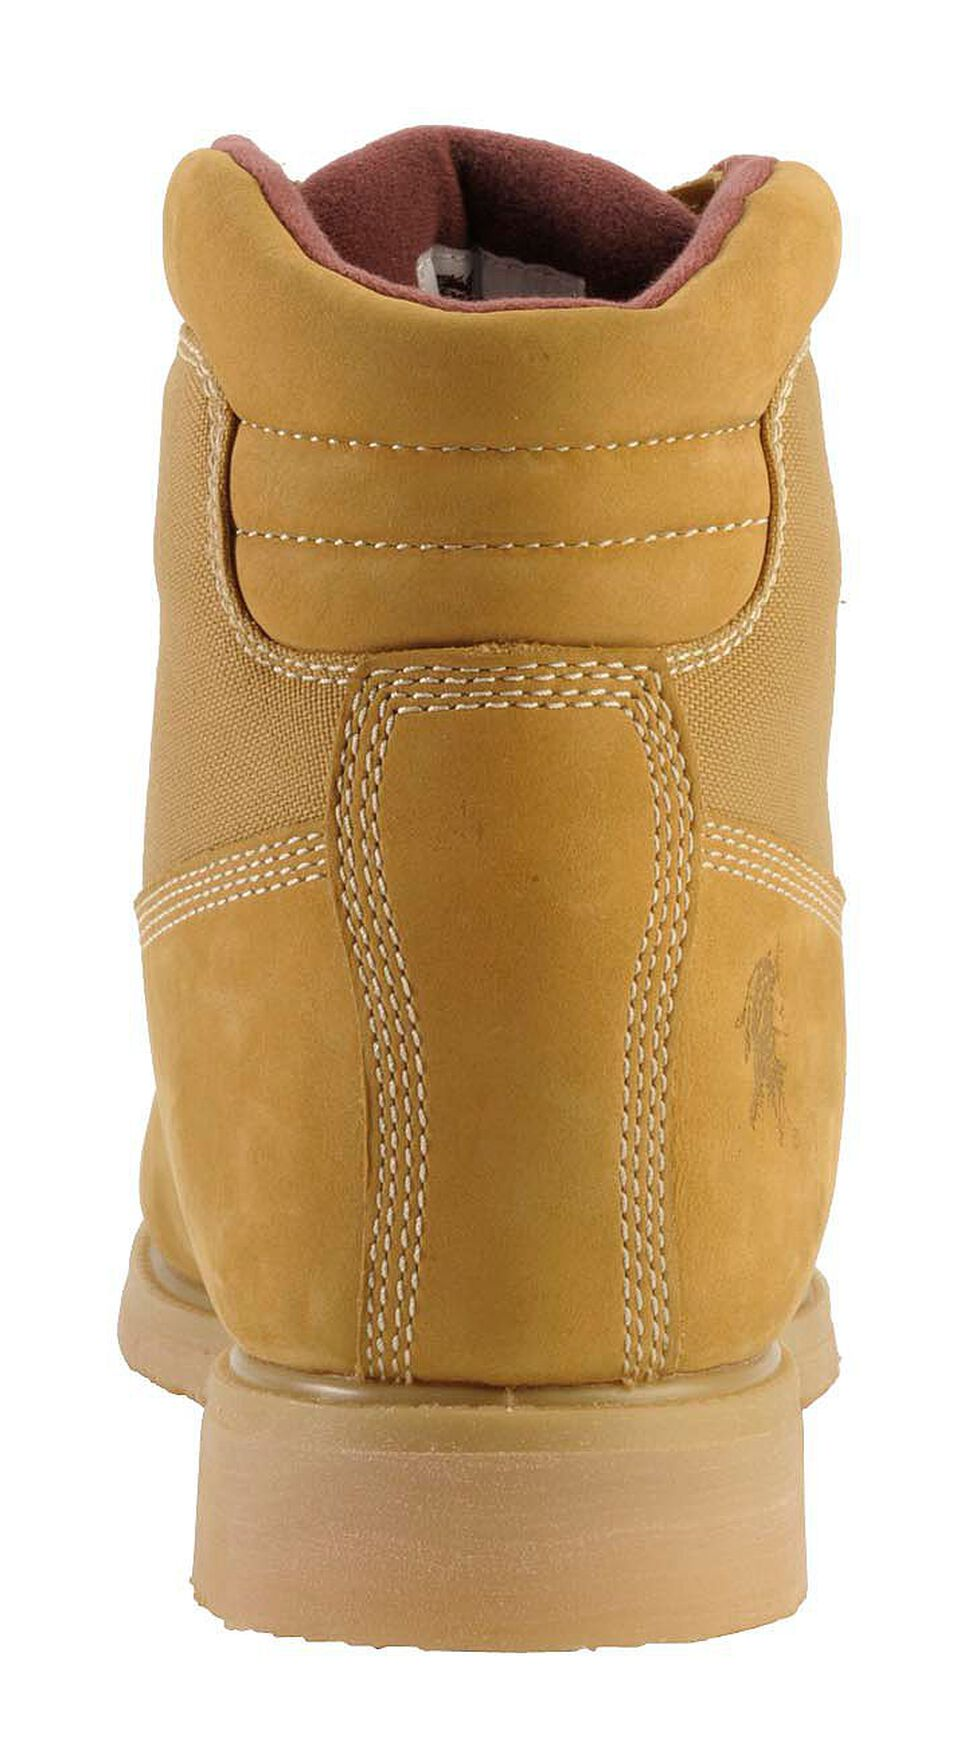 """Chippewa Waterproof & Insulated Nubuc 6"""" Lace-Up Work Boots - Round Toe, Golden Tan, hi-res"""